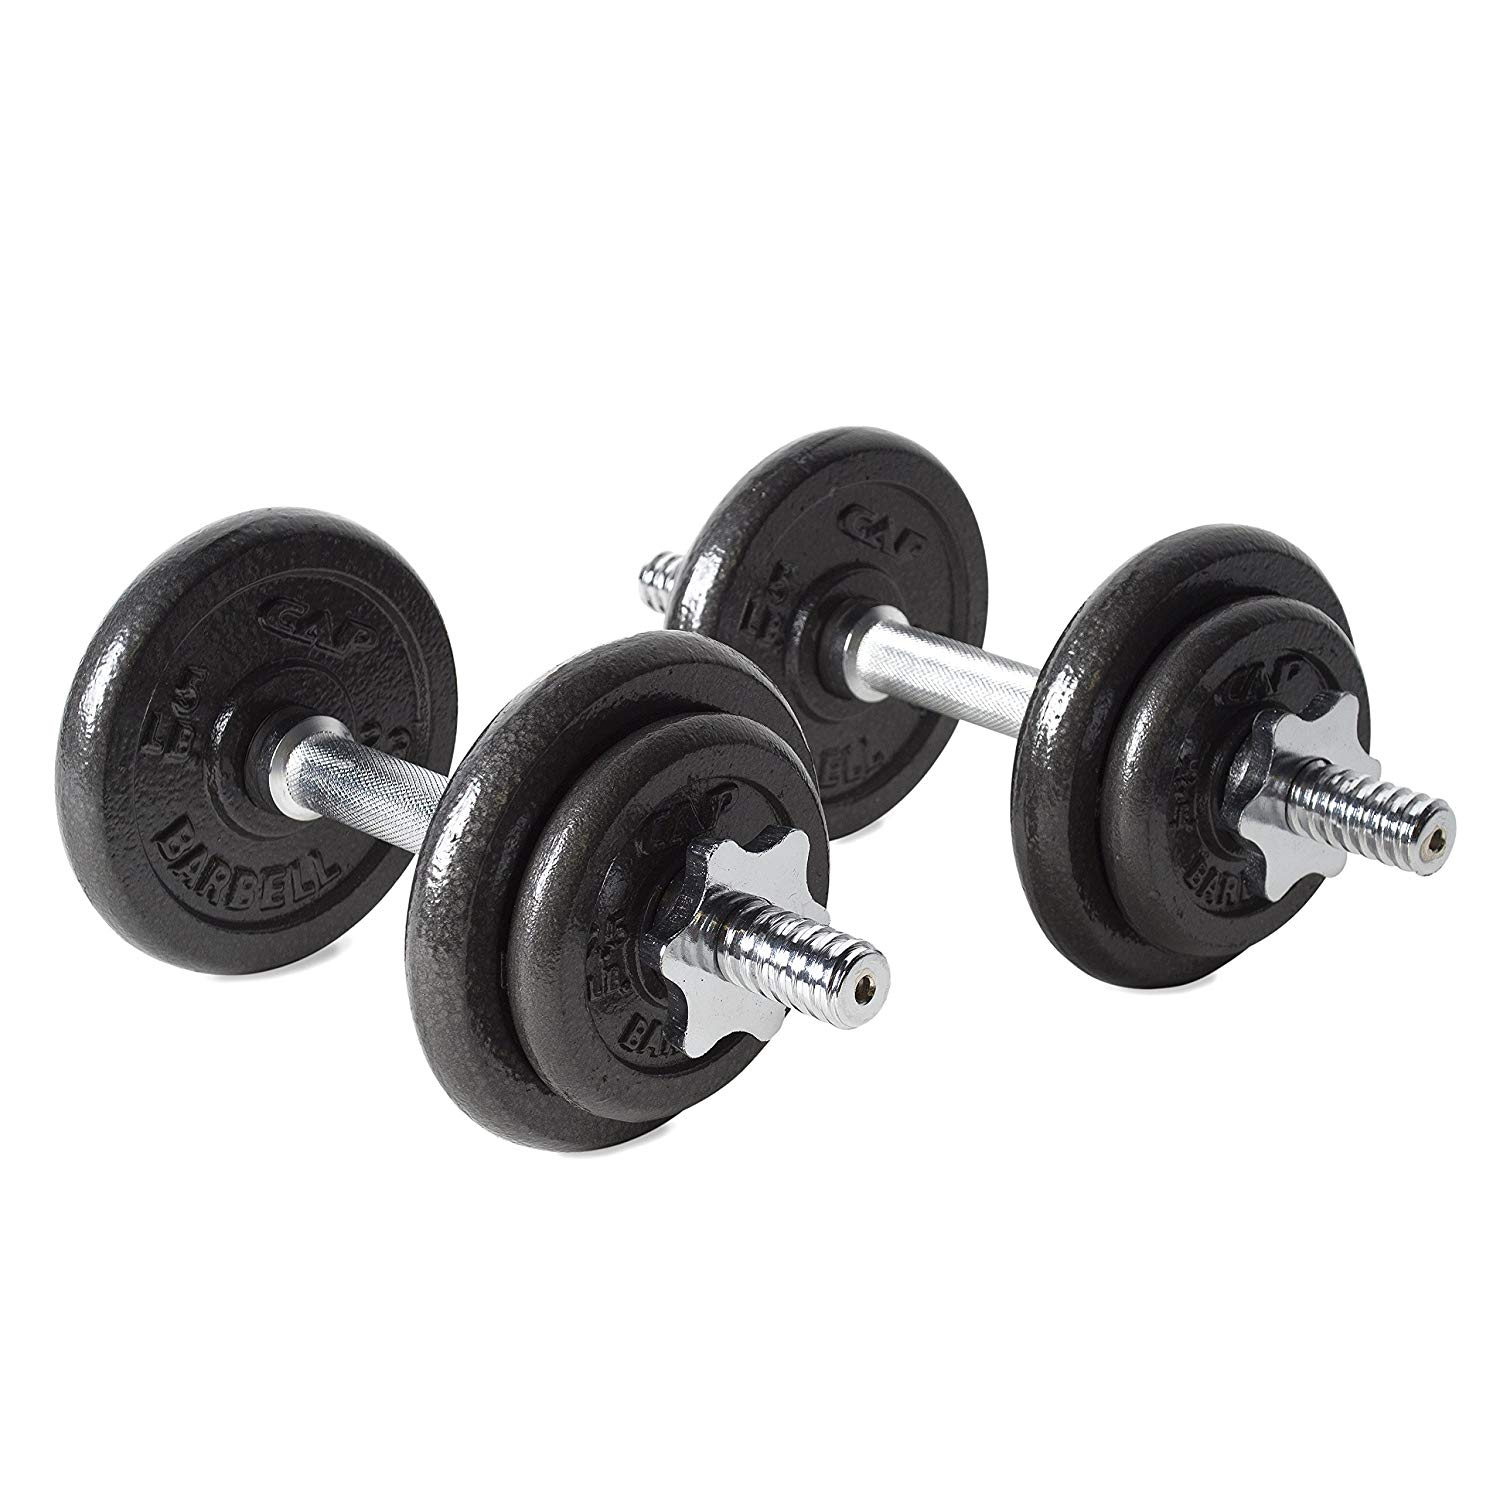 CAP Barbells Adjustable Dumbbells